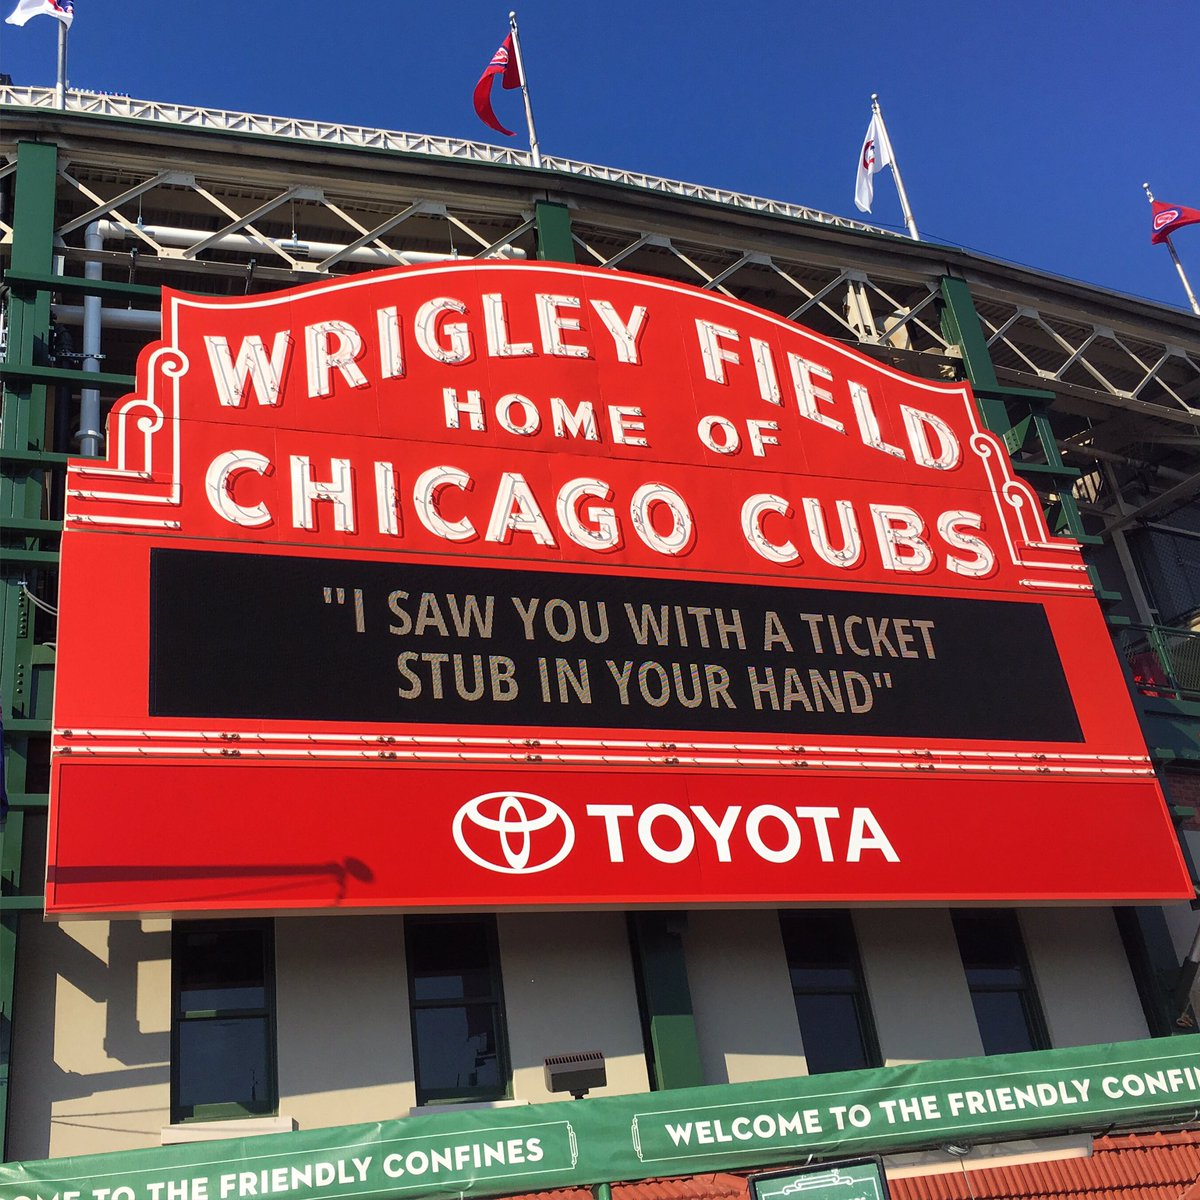 wrigley field chicago #phish - RT @andygadiel https://t.co/ZHSzrRfmew